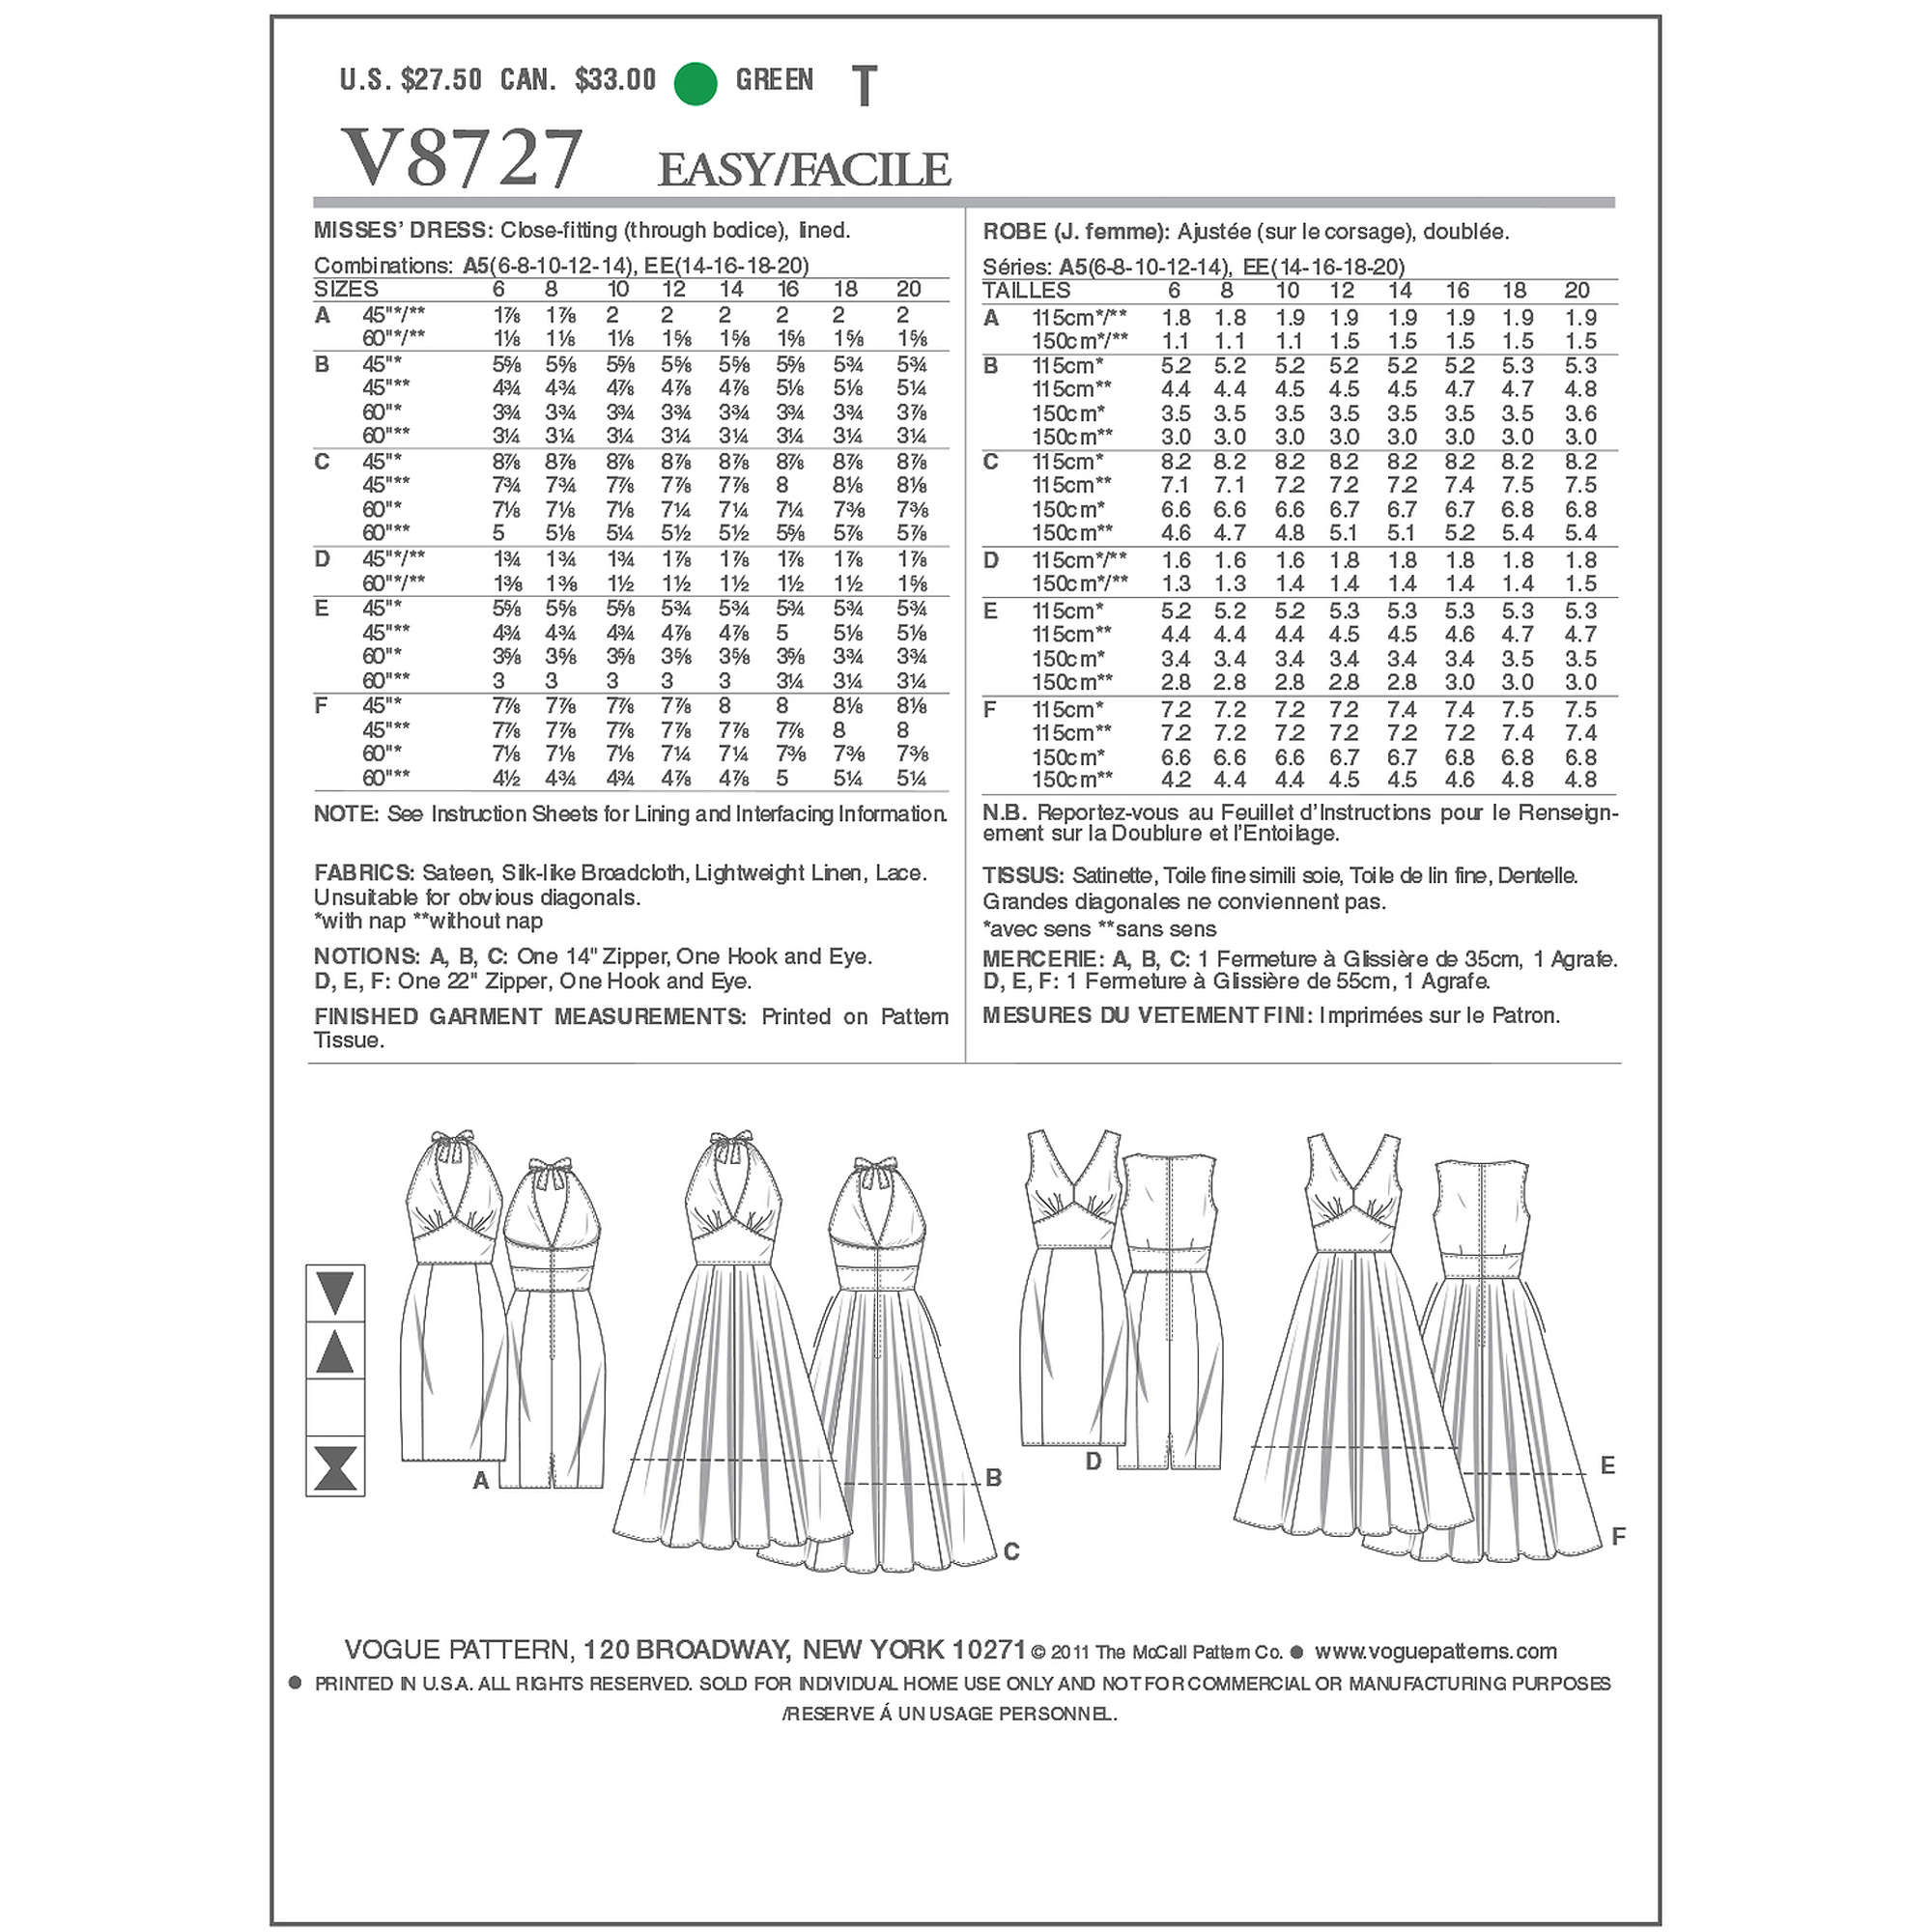 Vogue Pattern Misses' Dress, EE (14, 16, 18, 20)